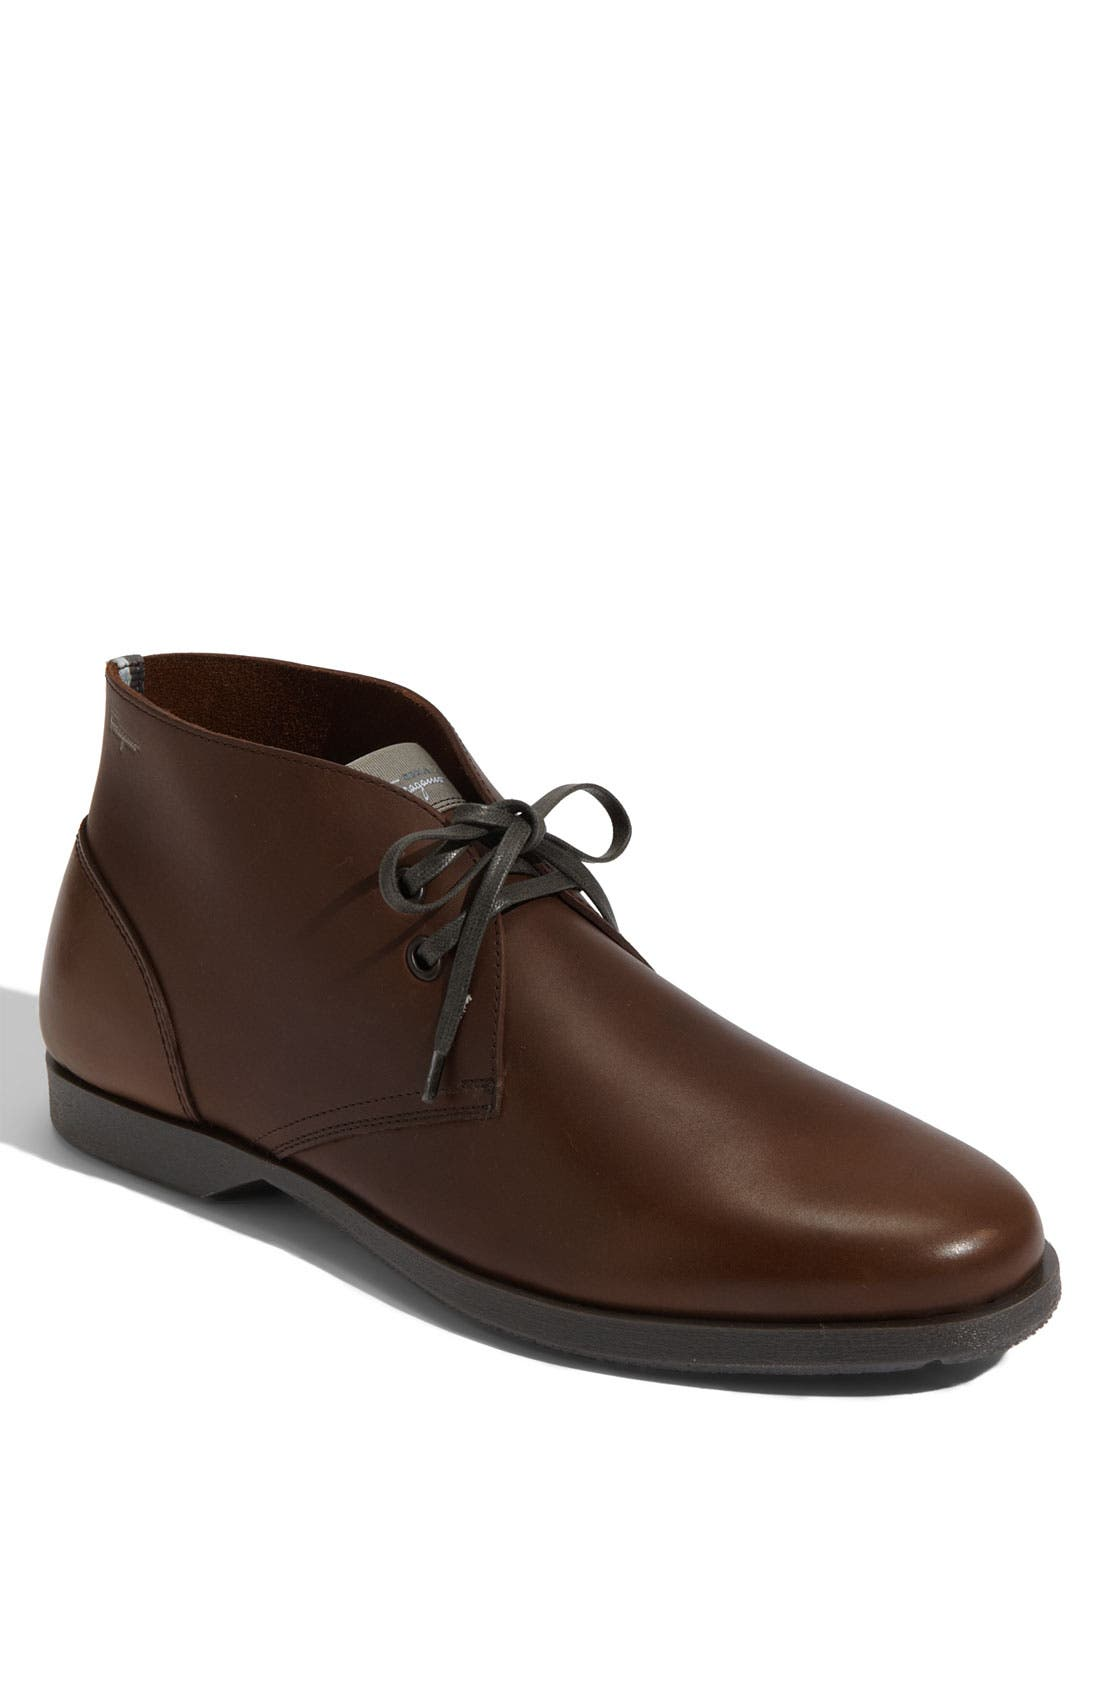 Alternate Image 1 Selected - Salvatore Ferragamo 'Metro' Lace-Up Boot